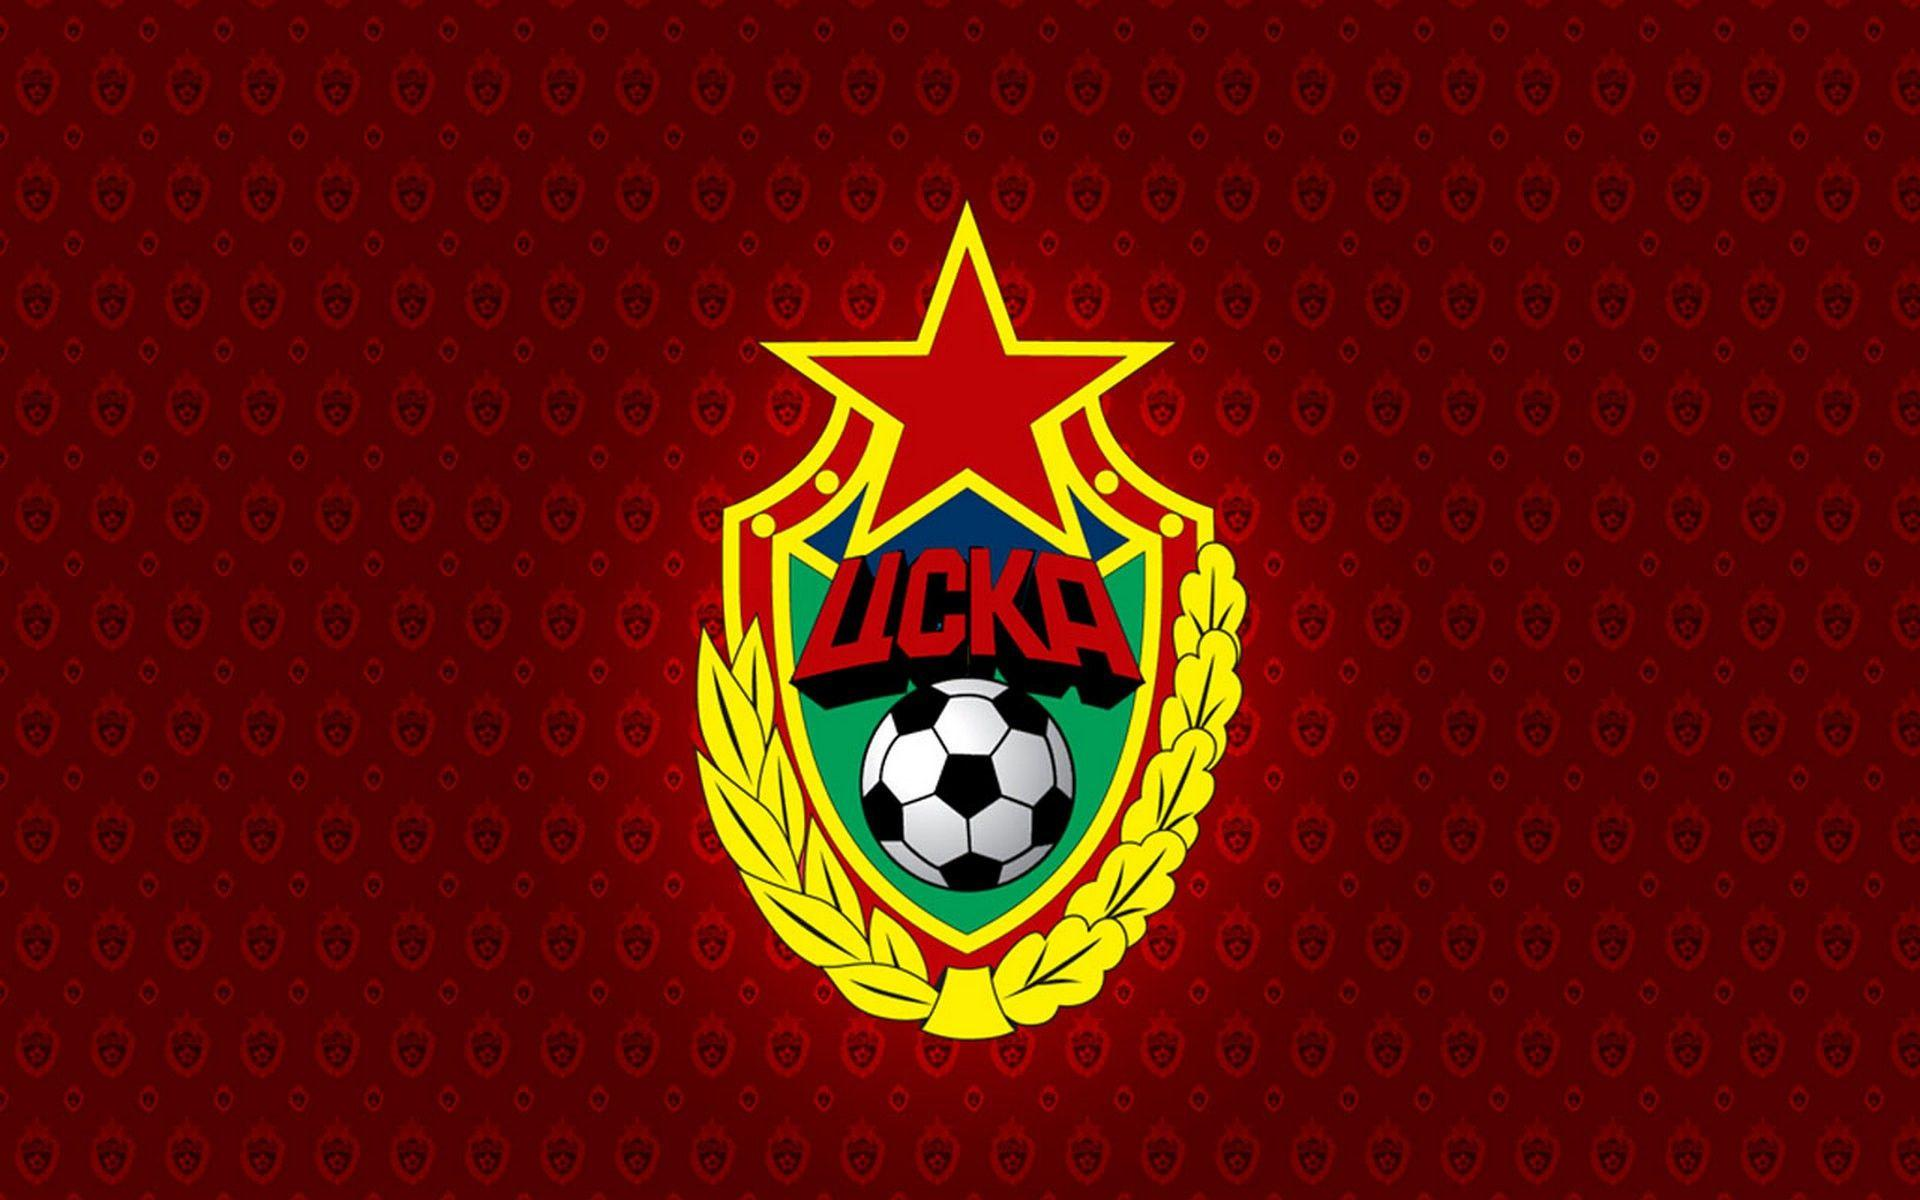 PFC CSKA Moscow wallpapers